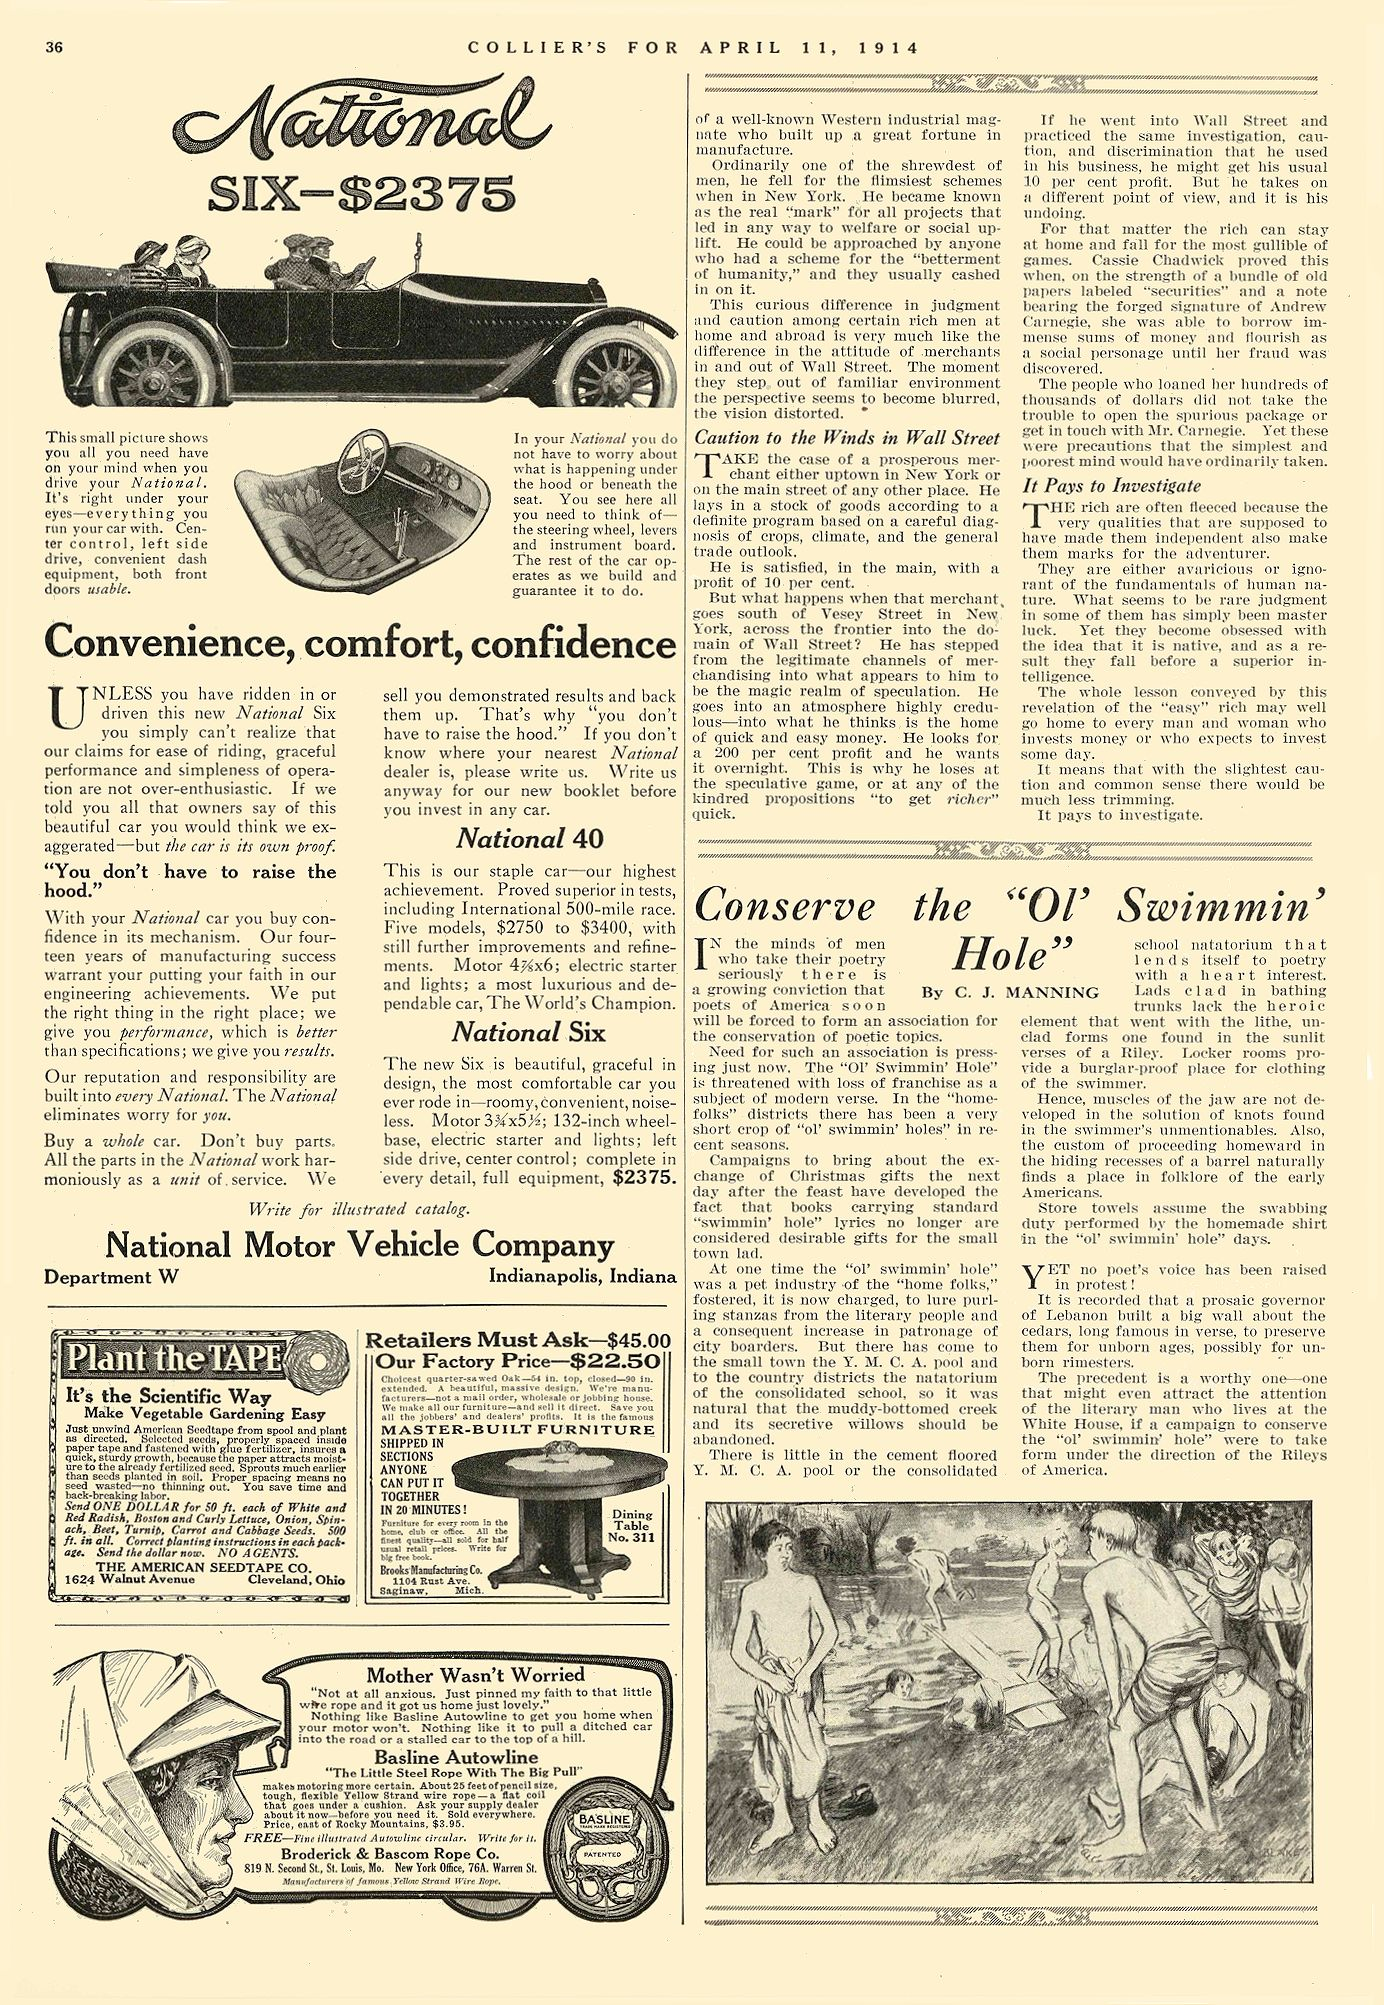 1914 4 11 NATIONAL Convenience, comfort, confidence National Motor Vehicle Co. Indianapolis, IND COLLIER'S April 11, 1914 10″x14.75″ page 36